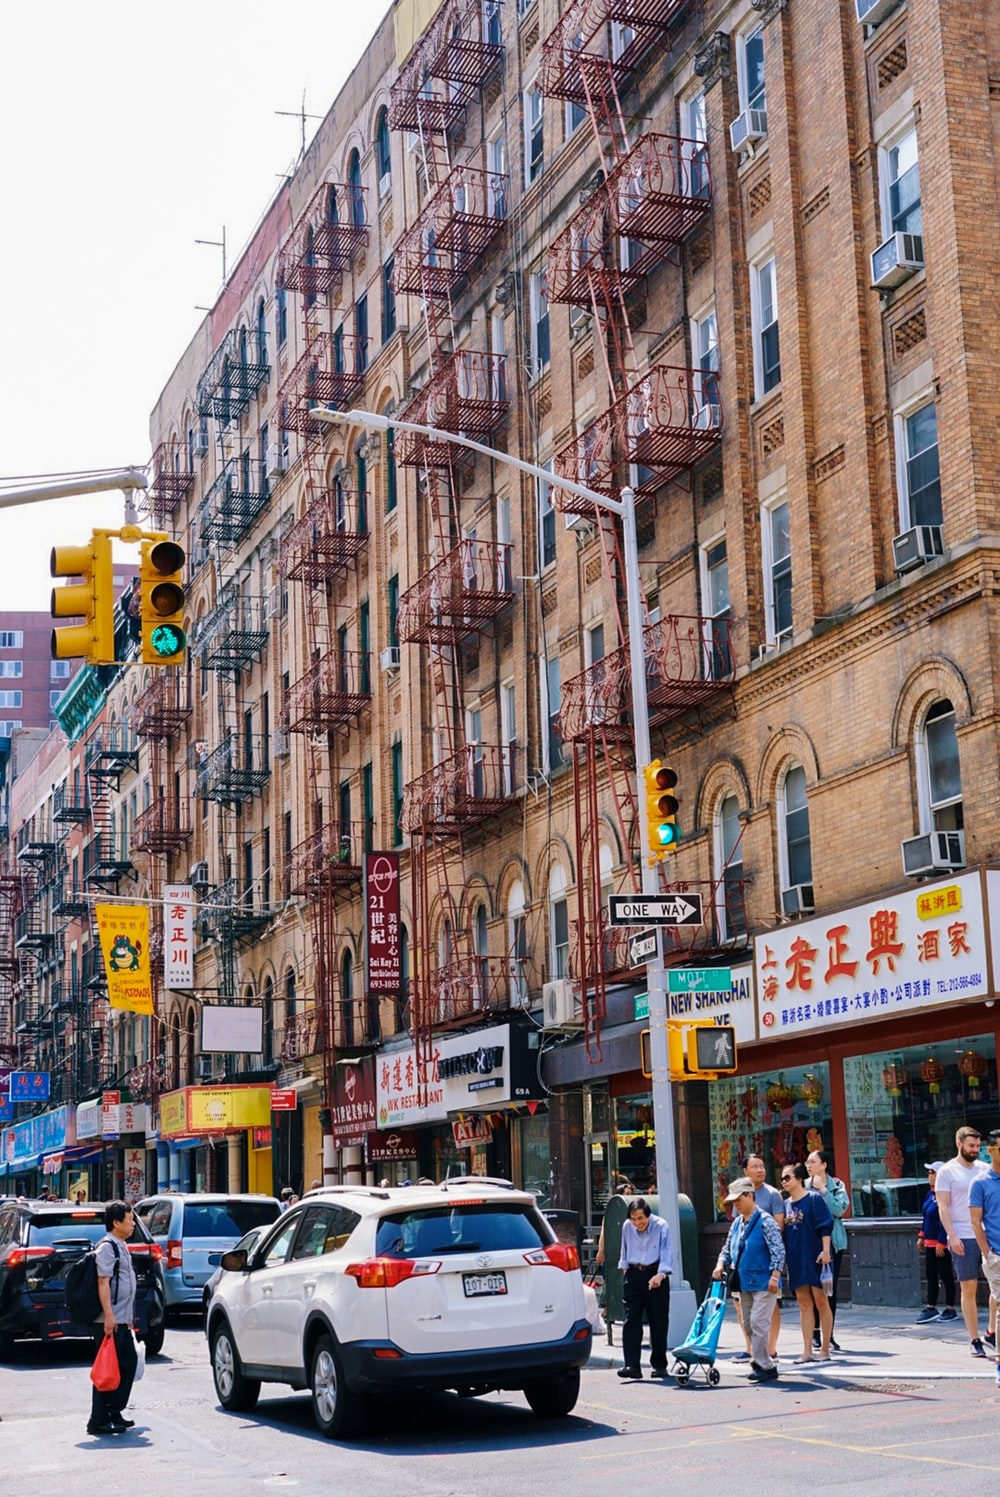 Chinatown Nyc Pictures Download Free Images On Unsplash